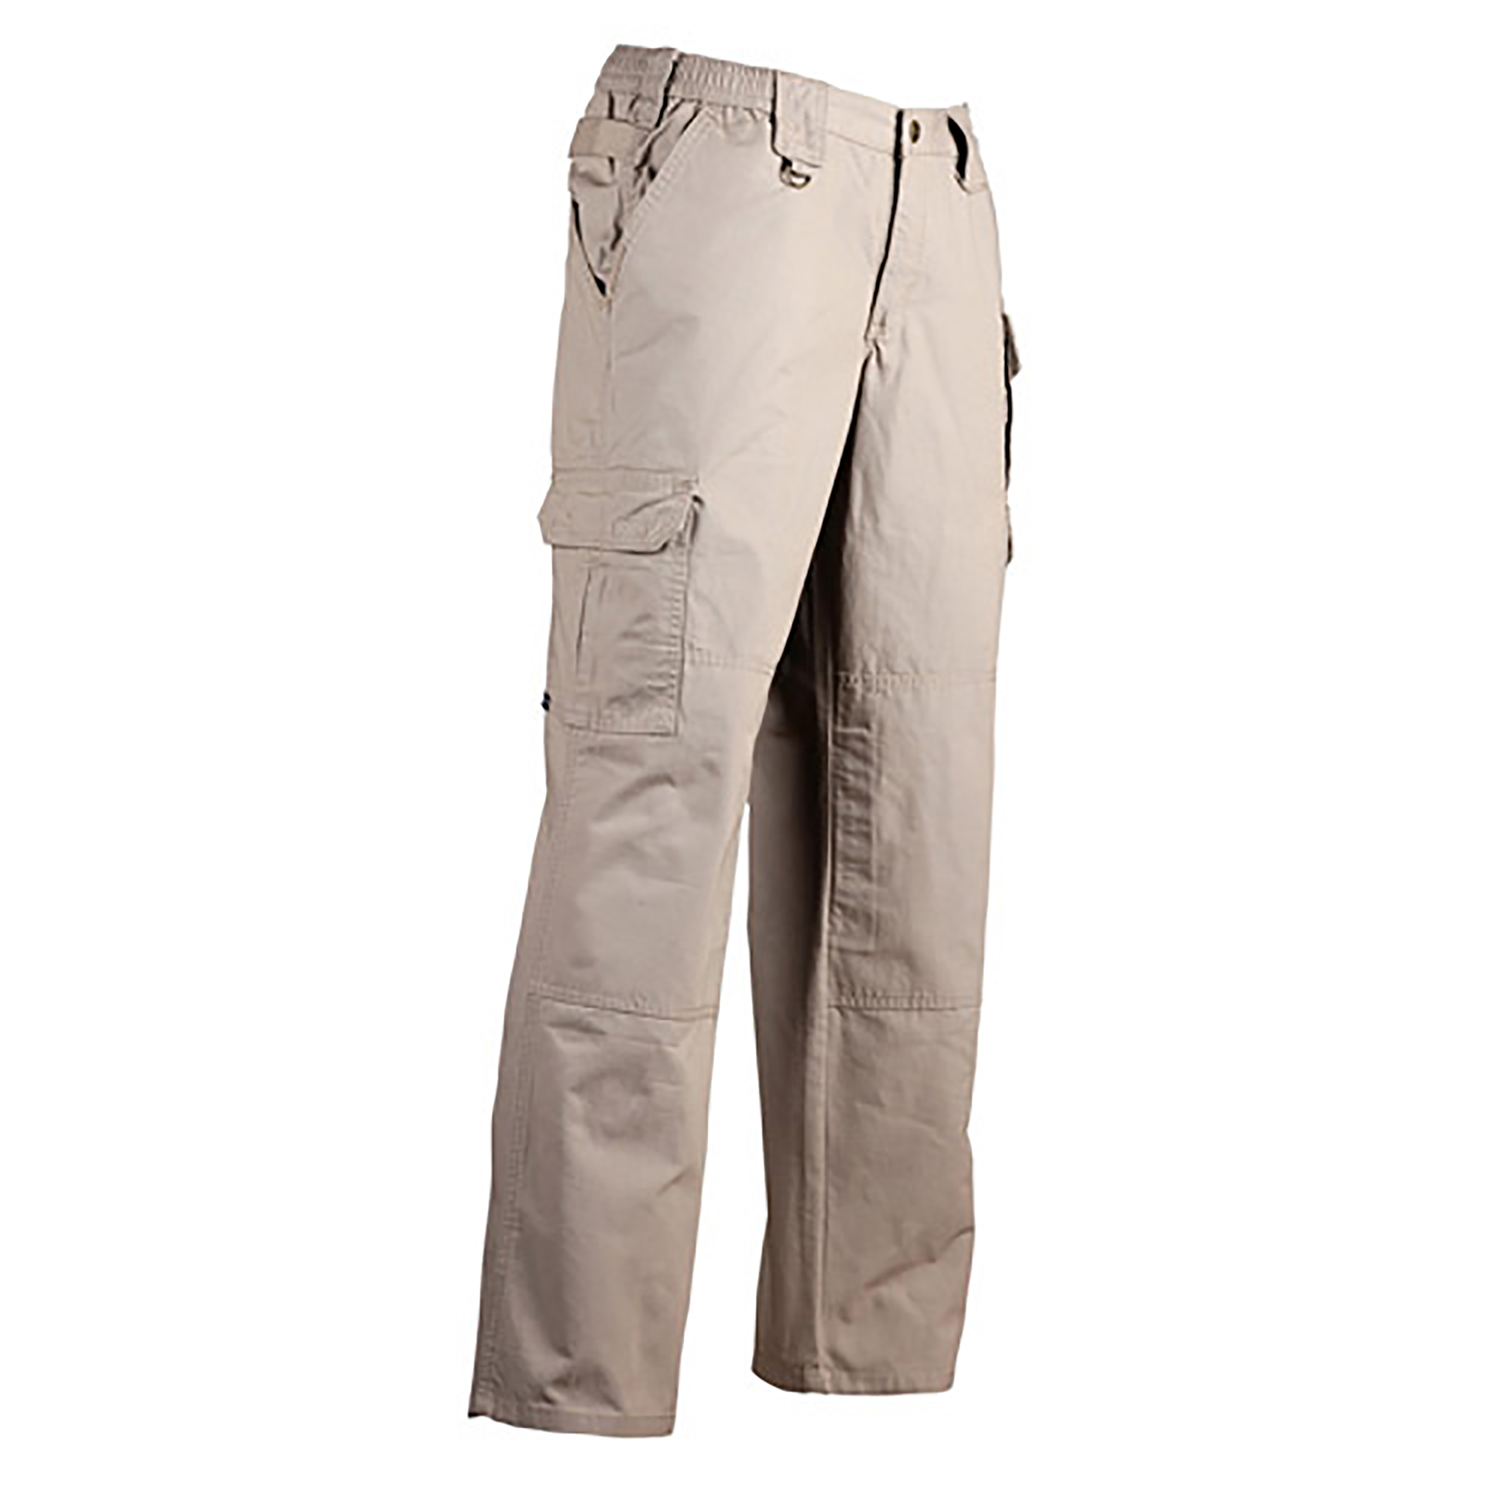 5.11 Womens Tactical Pants